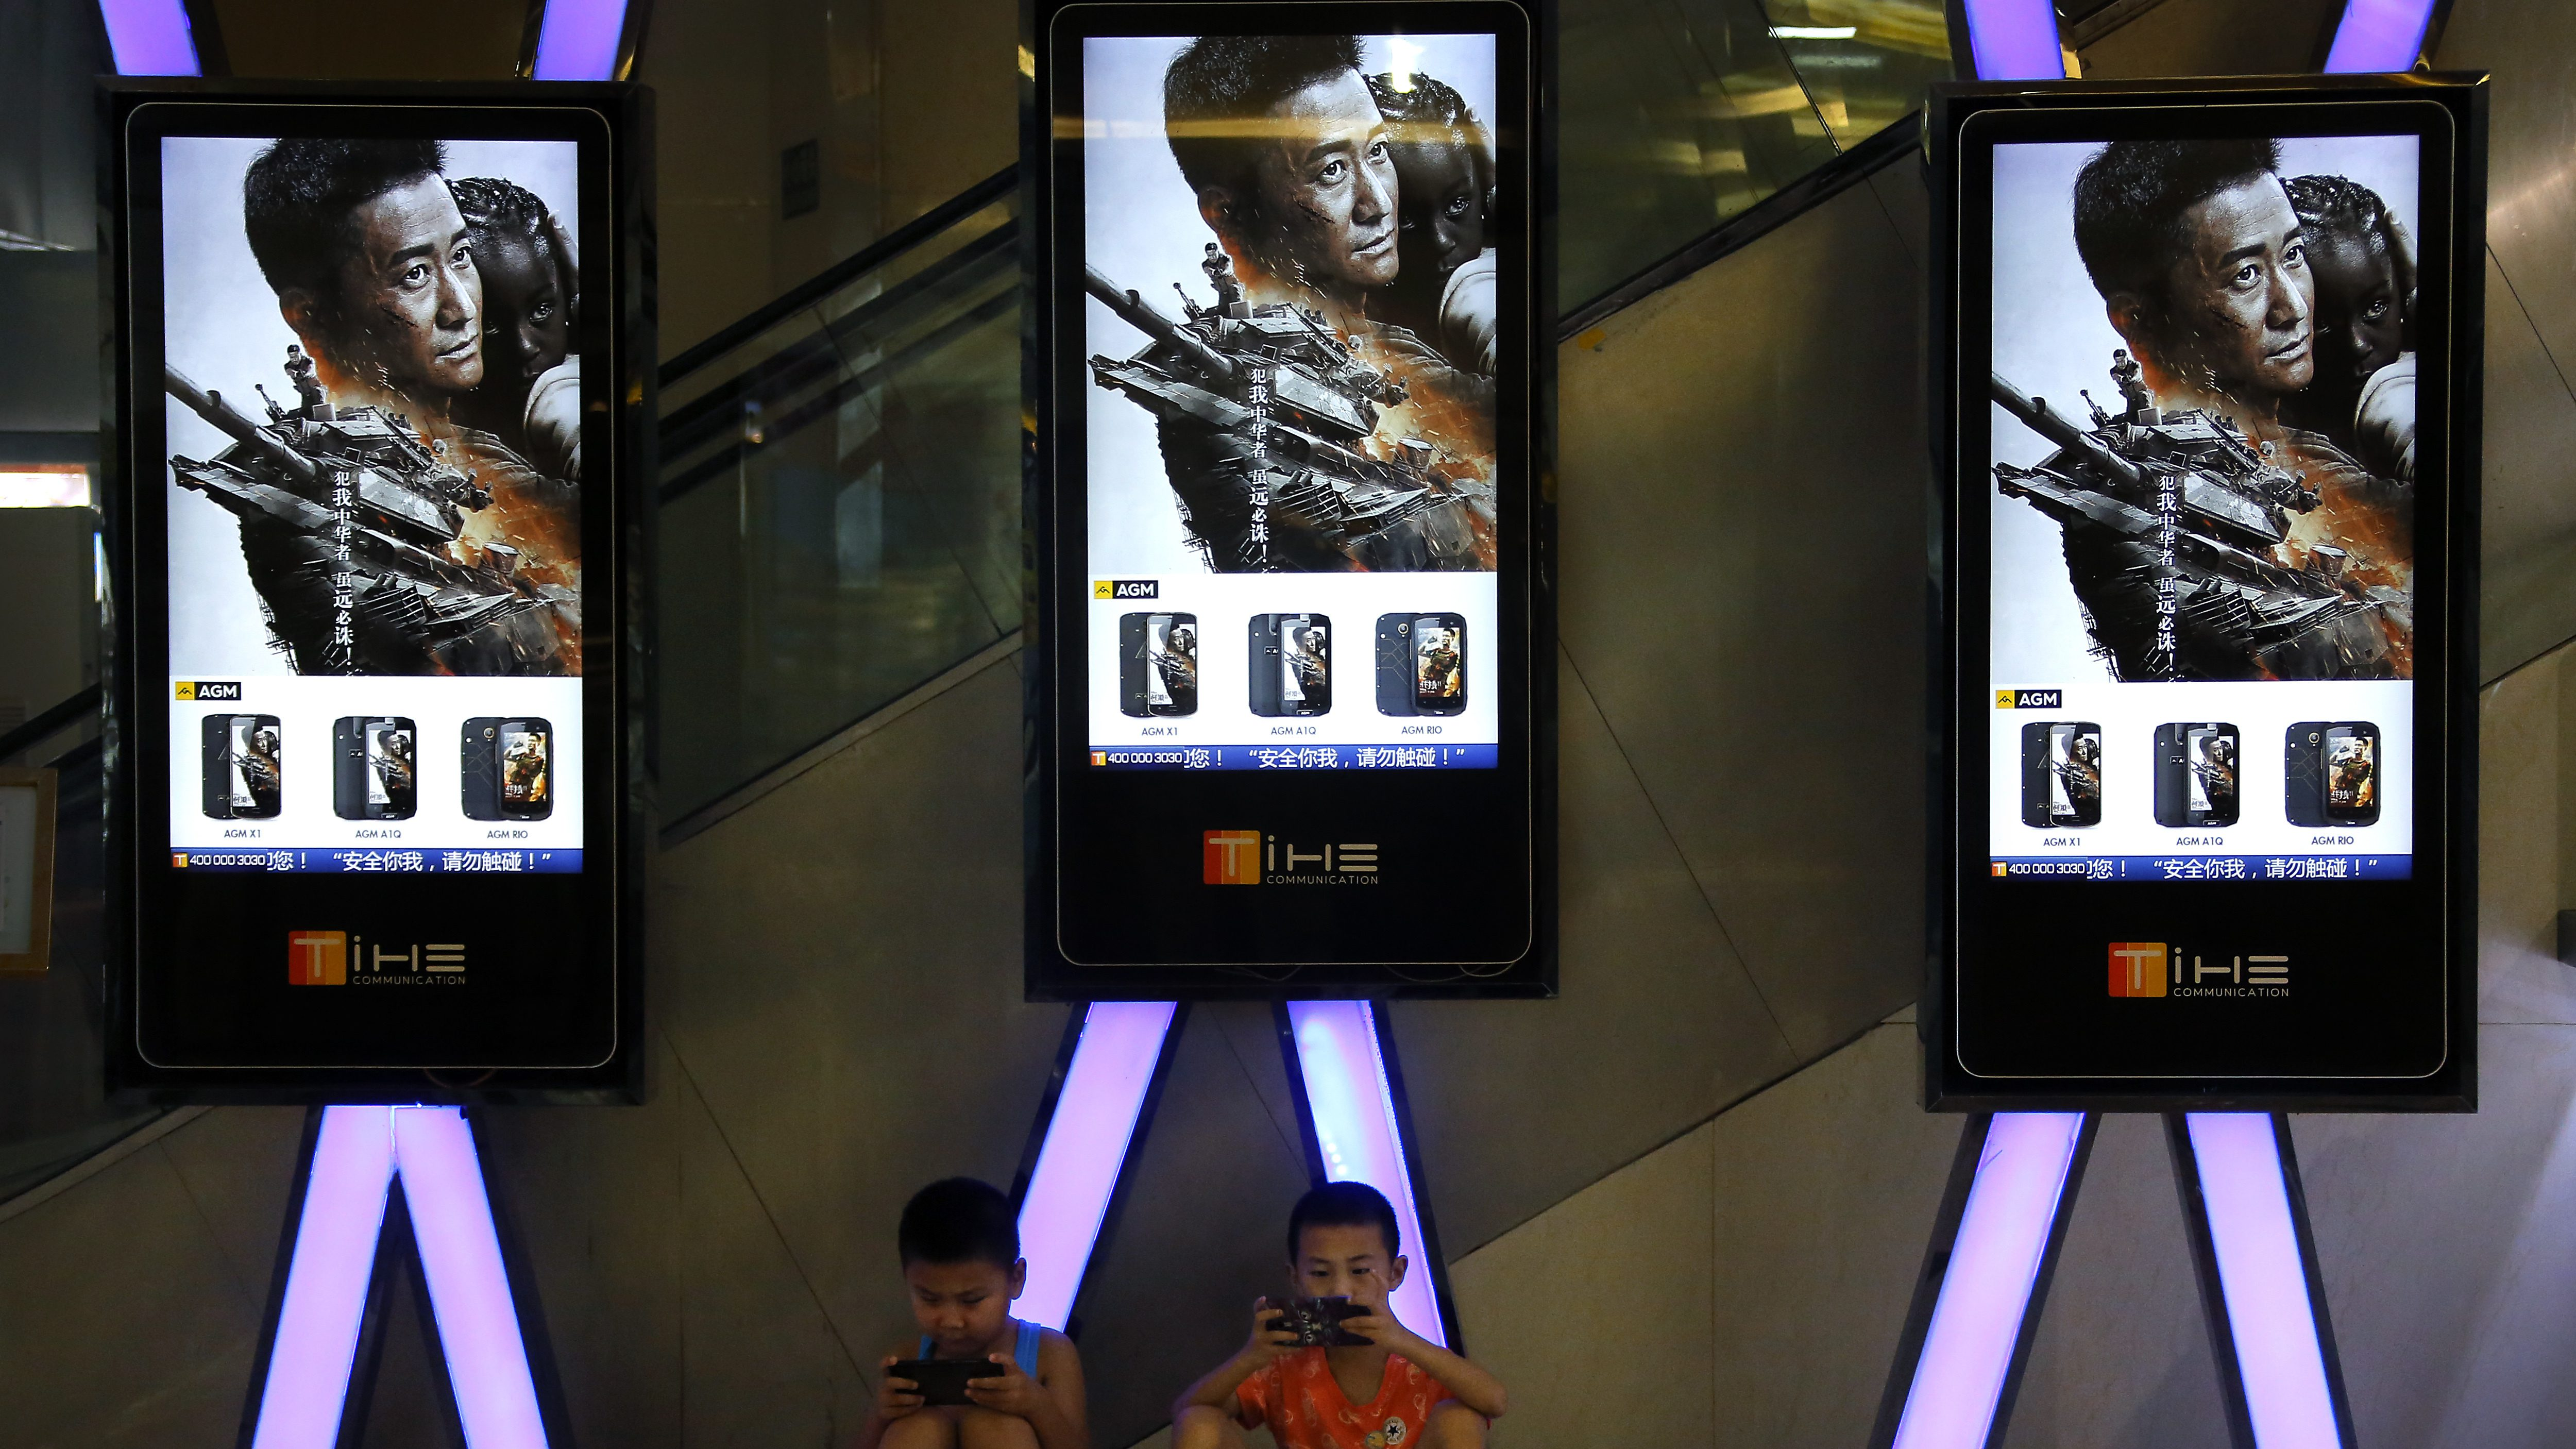 """Children use smartphones near monitors displaying a Chinese action movie """"Wolf Warrior 2"""" at a cinema in Beijing, Thursday, Aug. 10, 2017. The A patriotic film reportedly inspired by evacuations of Chinese civilians in Libya and Yemen become China's biggest-ever grossing domestic movie. By Wednesday, action movie """"Wolf Warrior 2"""" had raked in more than 3.4 billion yuan ($507 million) since its release on July 27, overtaking Hong Kong director Stephen Chow's 2016 fantasy comedy """"The Mermaid"""" in the record books. (AP Photo/Andy Wong)"""